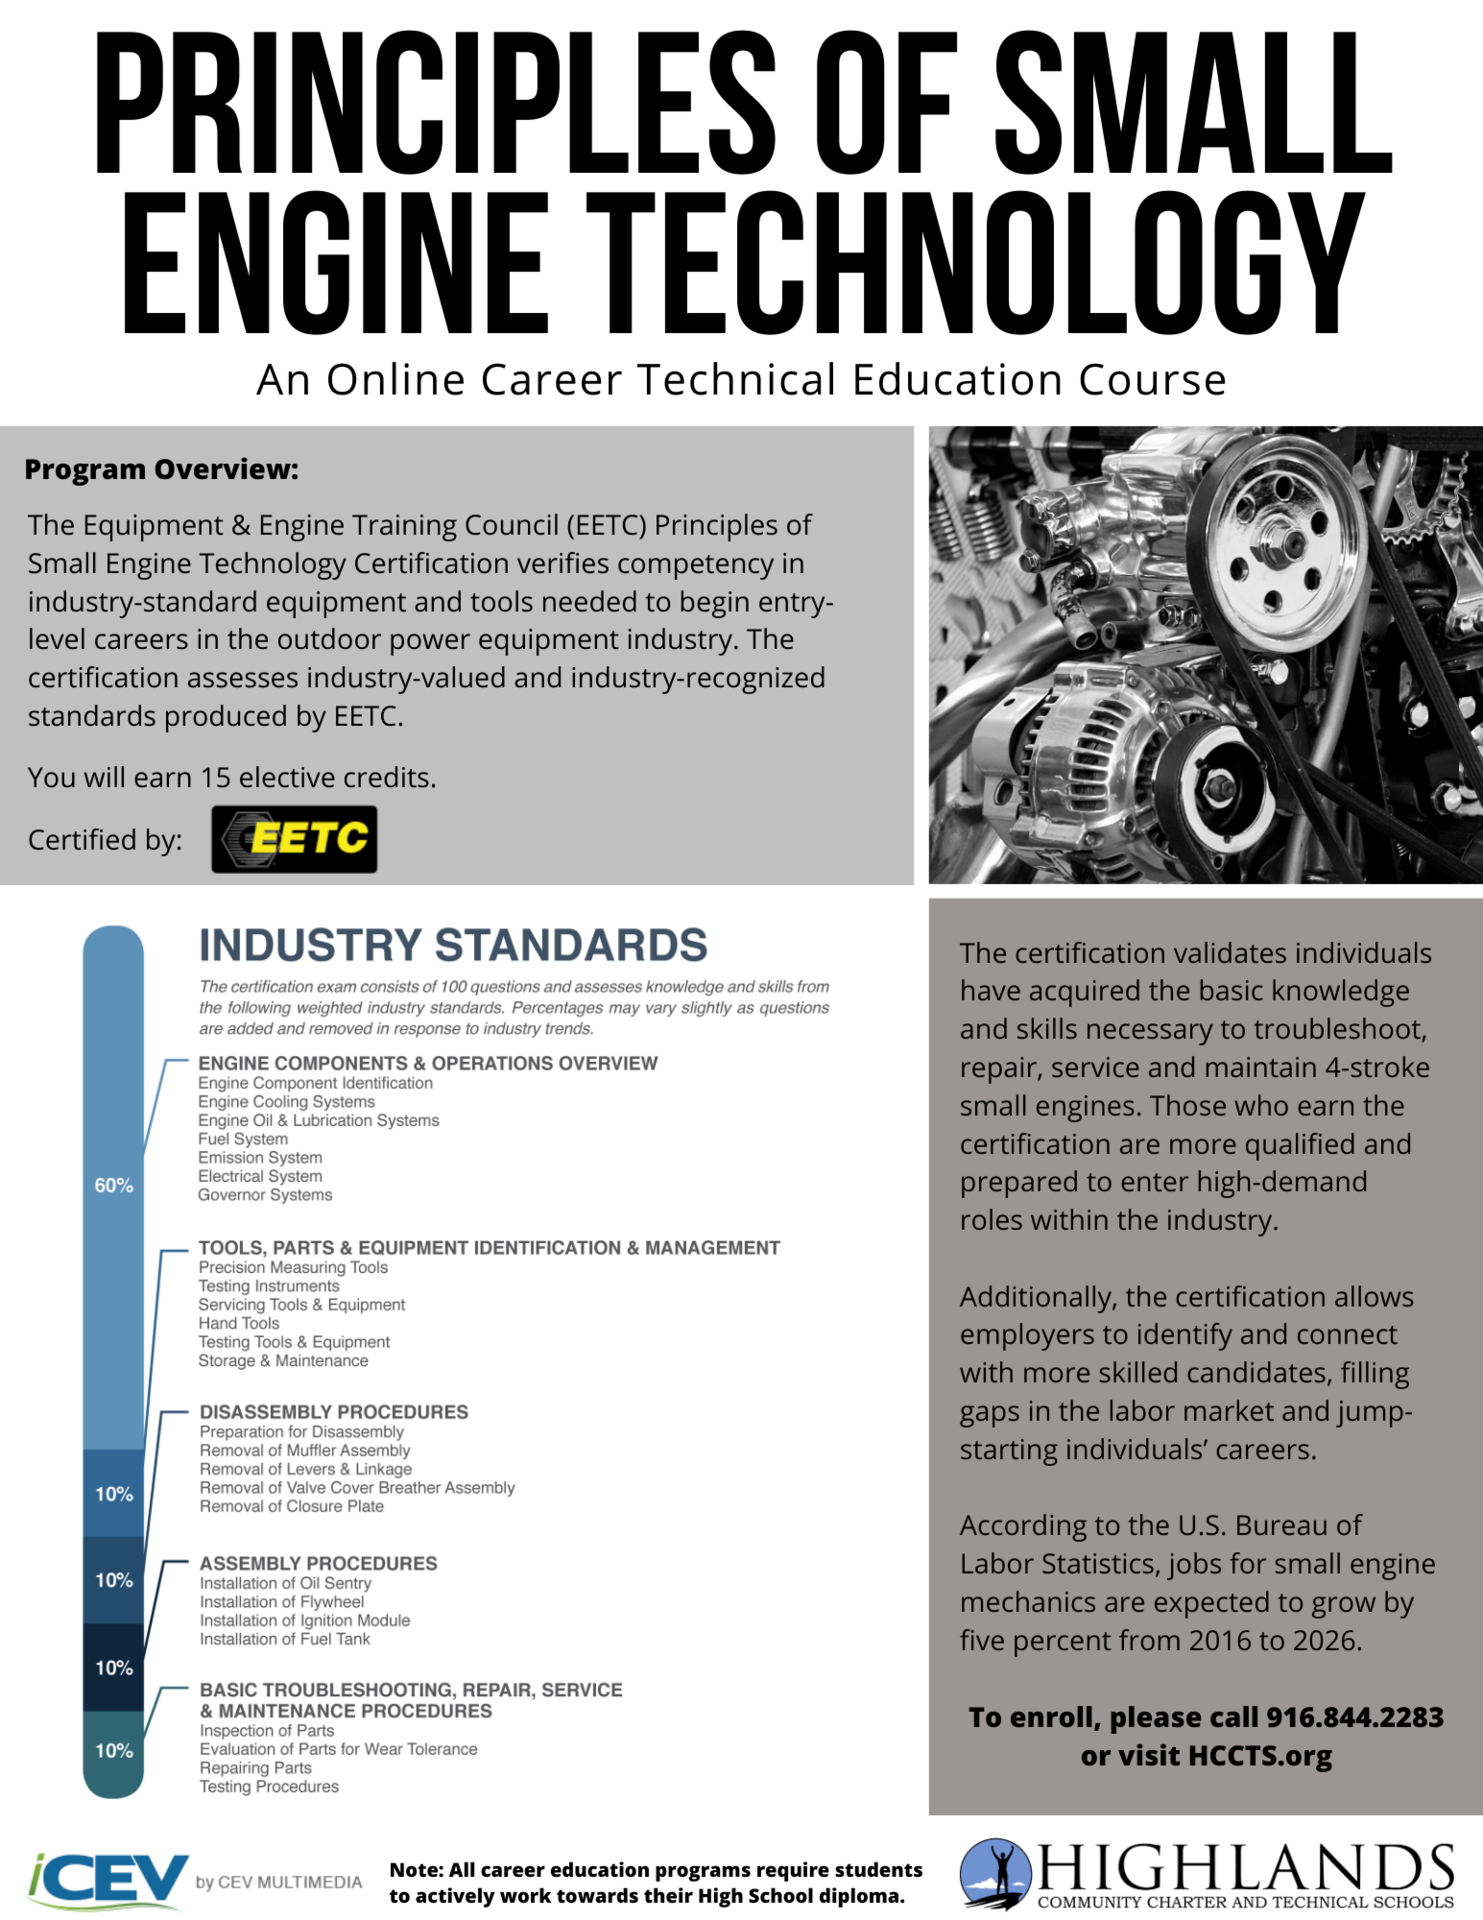 Principles of Small Engine Technology